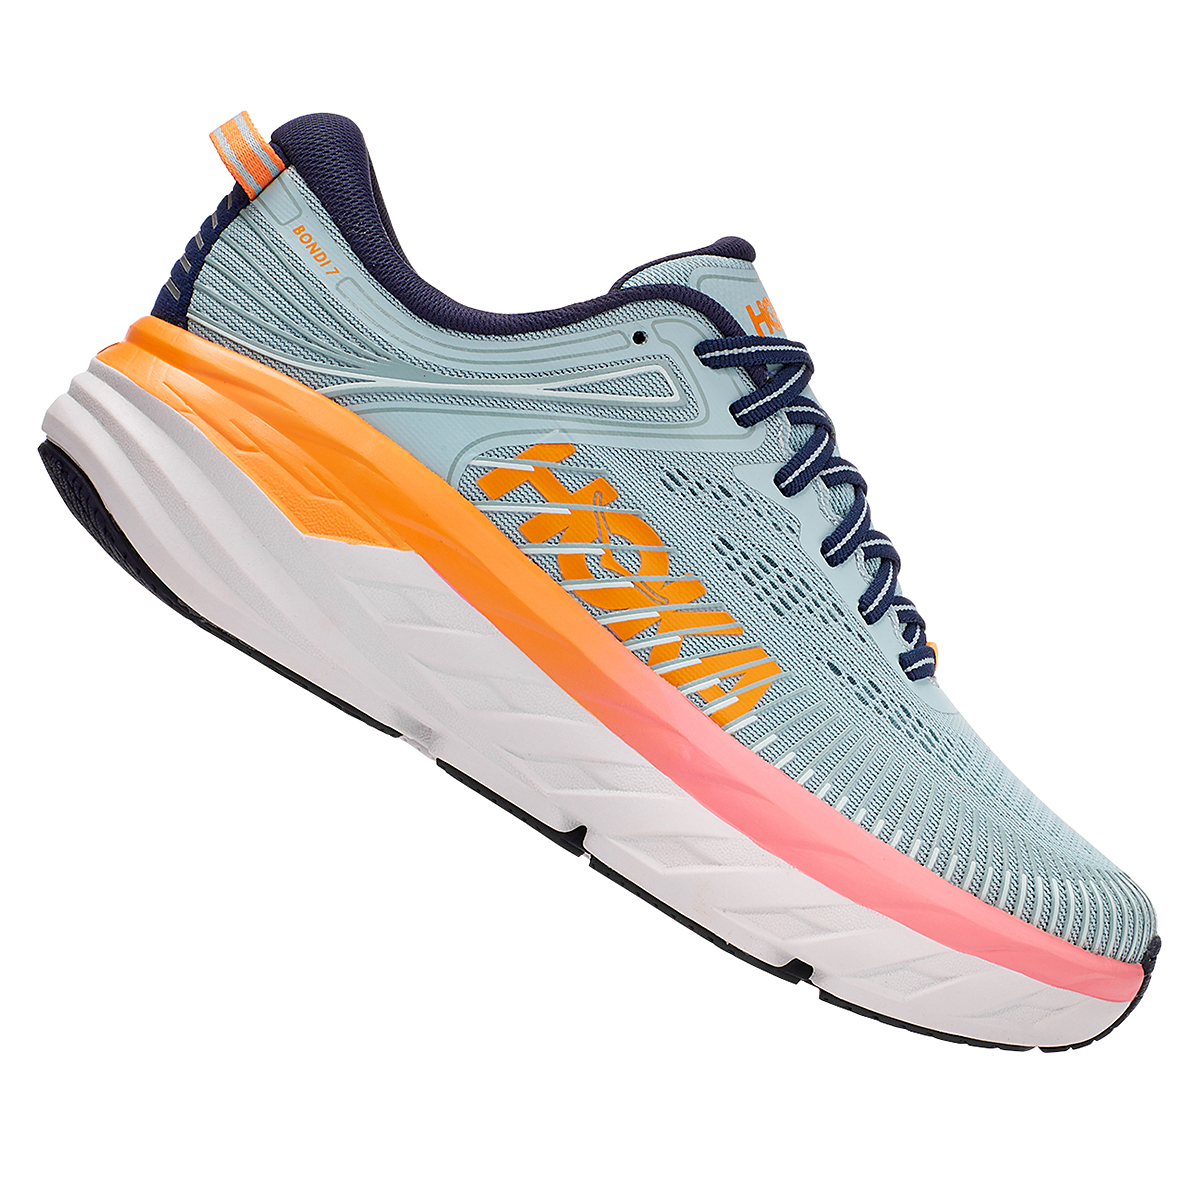 Women's Hoka One One Bondi 7 Running Shoe, , large, image 4